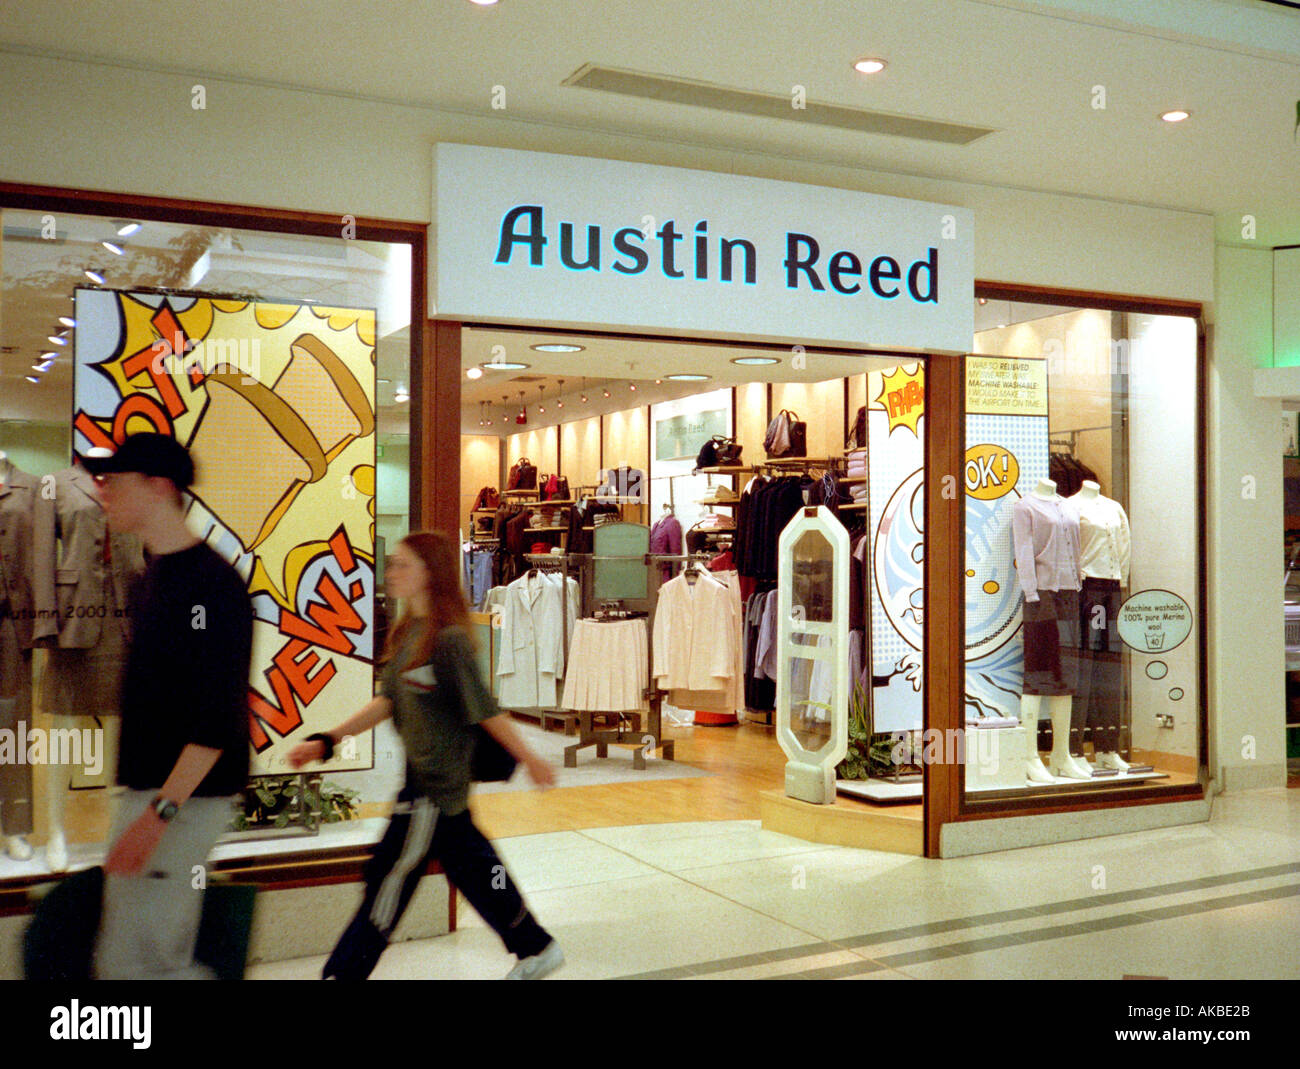 Austin Reed High Resolution Stock Photography And Images Alamy